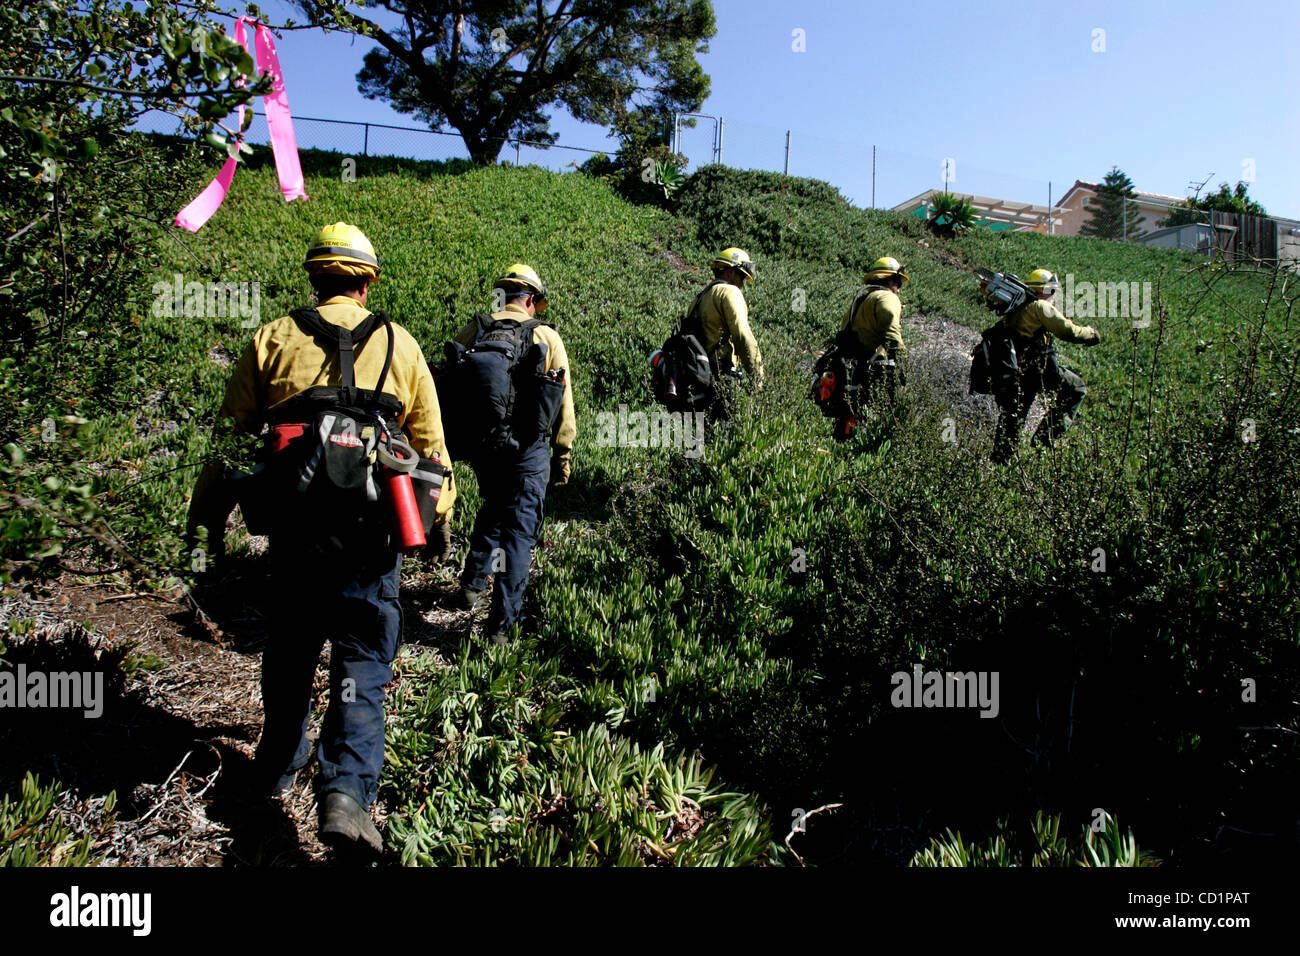 October 21, 2008_San Diego, CA_Sycuan Reservation Golden Eagles Fly Crew members, from left; BILL ULRICH, CARLOS - Stock Image